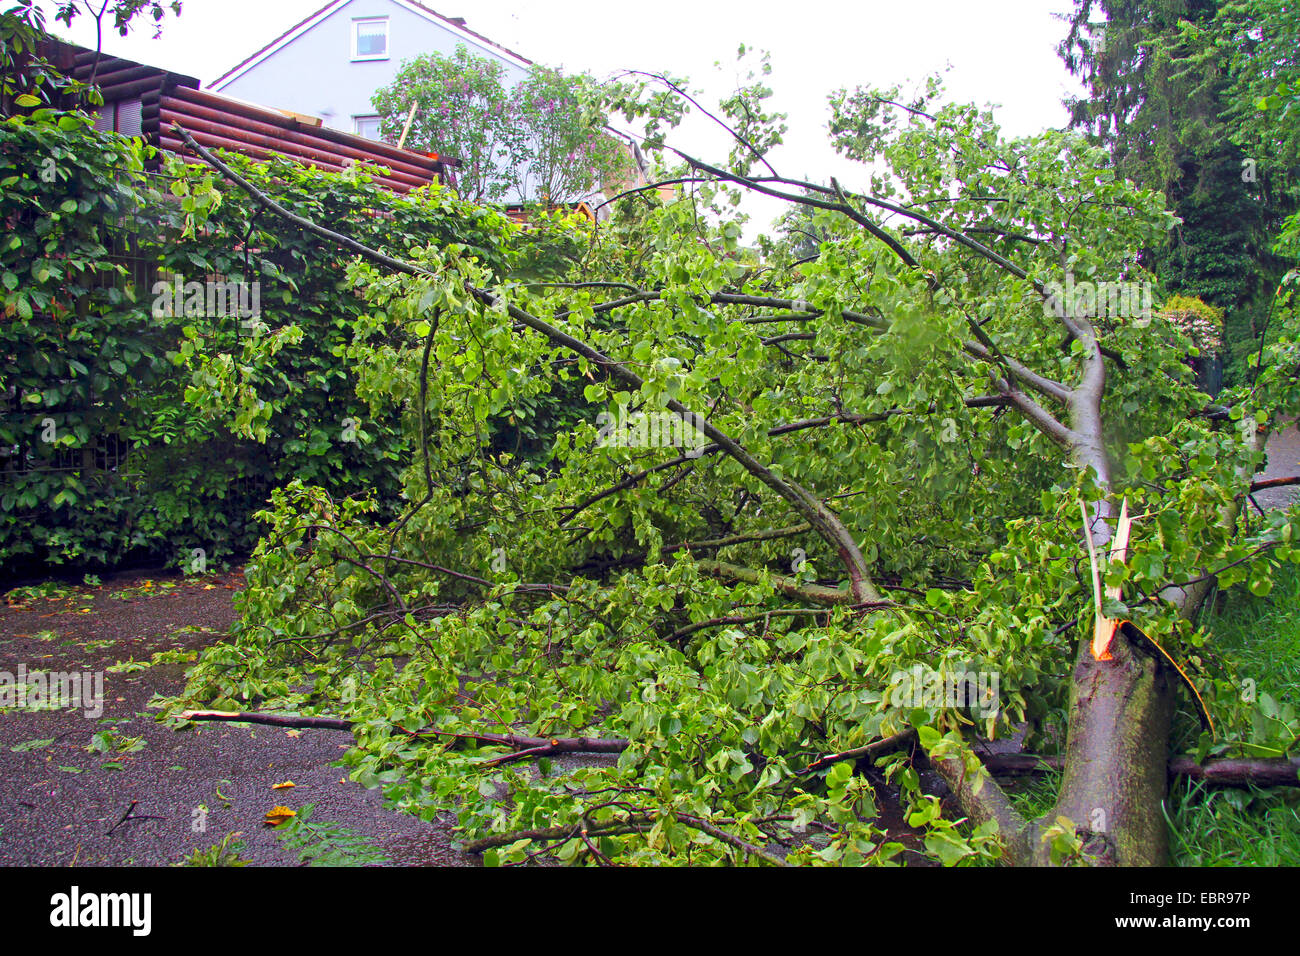 broken branch after squall, Germany - Stock Image